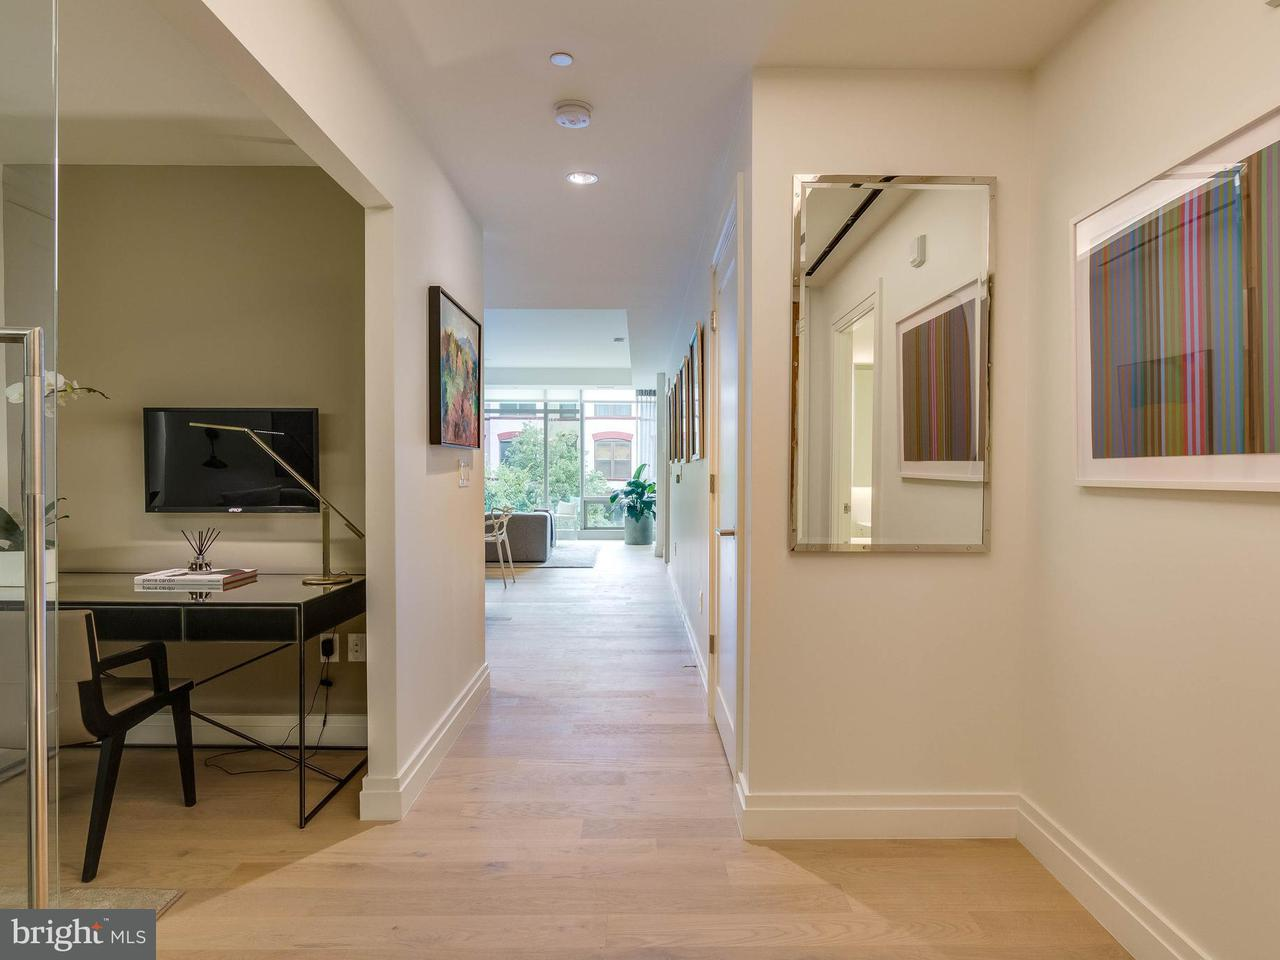 Additional photo for property listing at 2501 M St Nw #312 2501 M St Nw #312 Washington, District De Columbia 20037 États-Unis